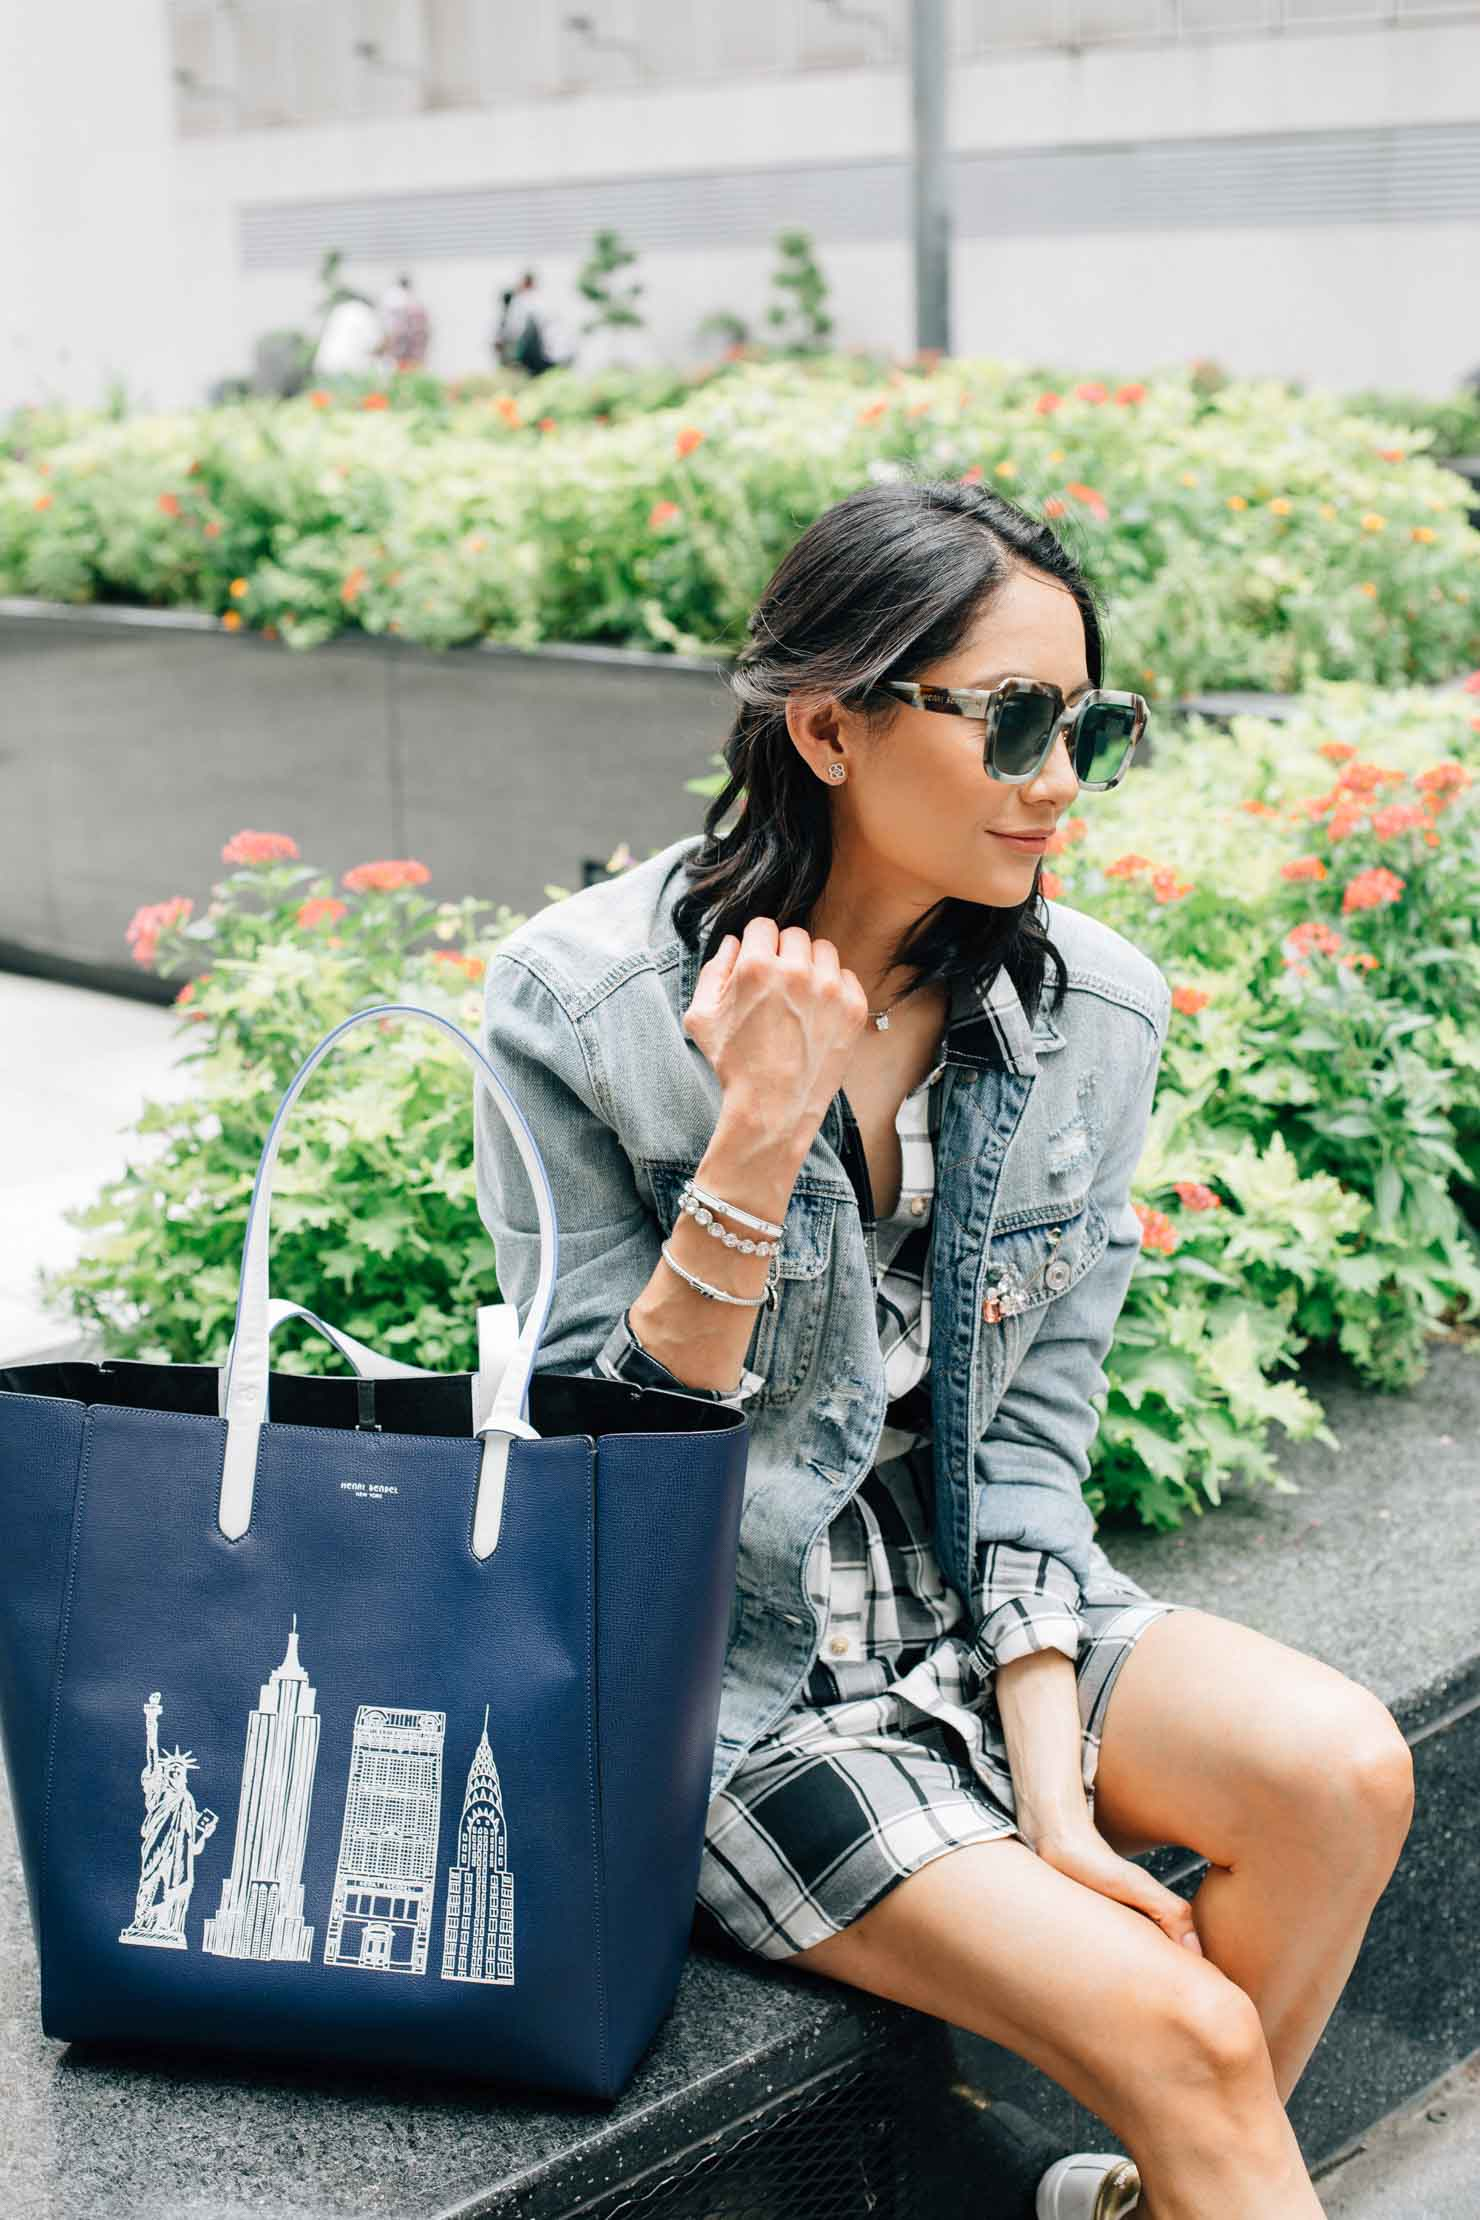 Gingham dress and jean jacket paired with a Henri Bendel bag